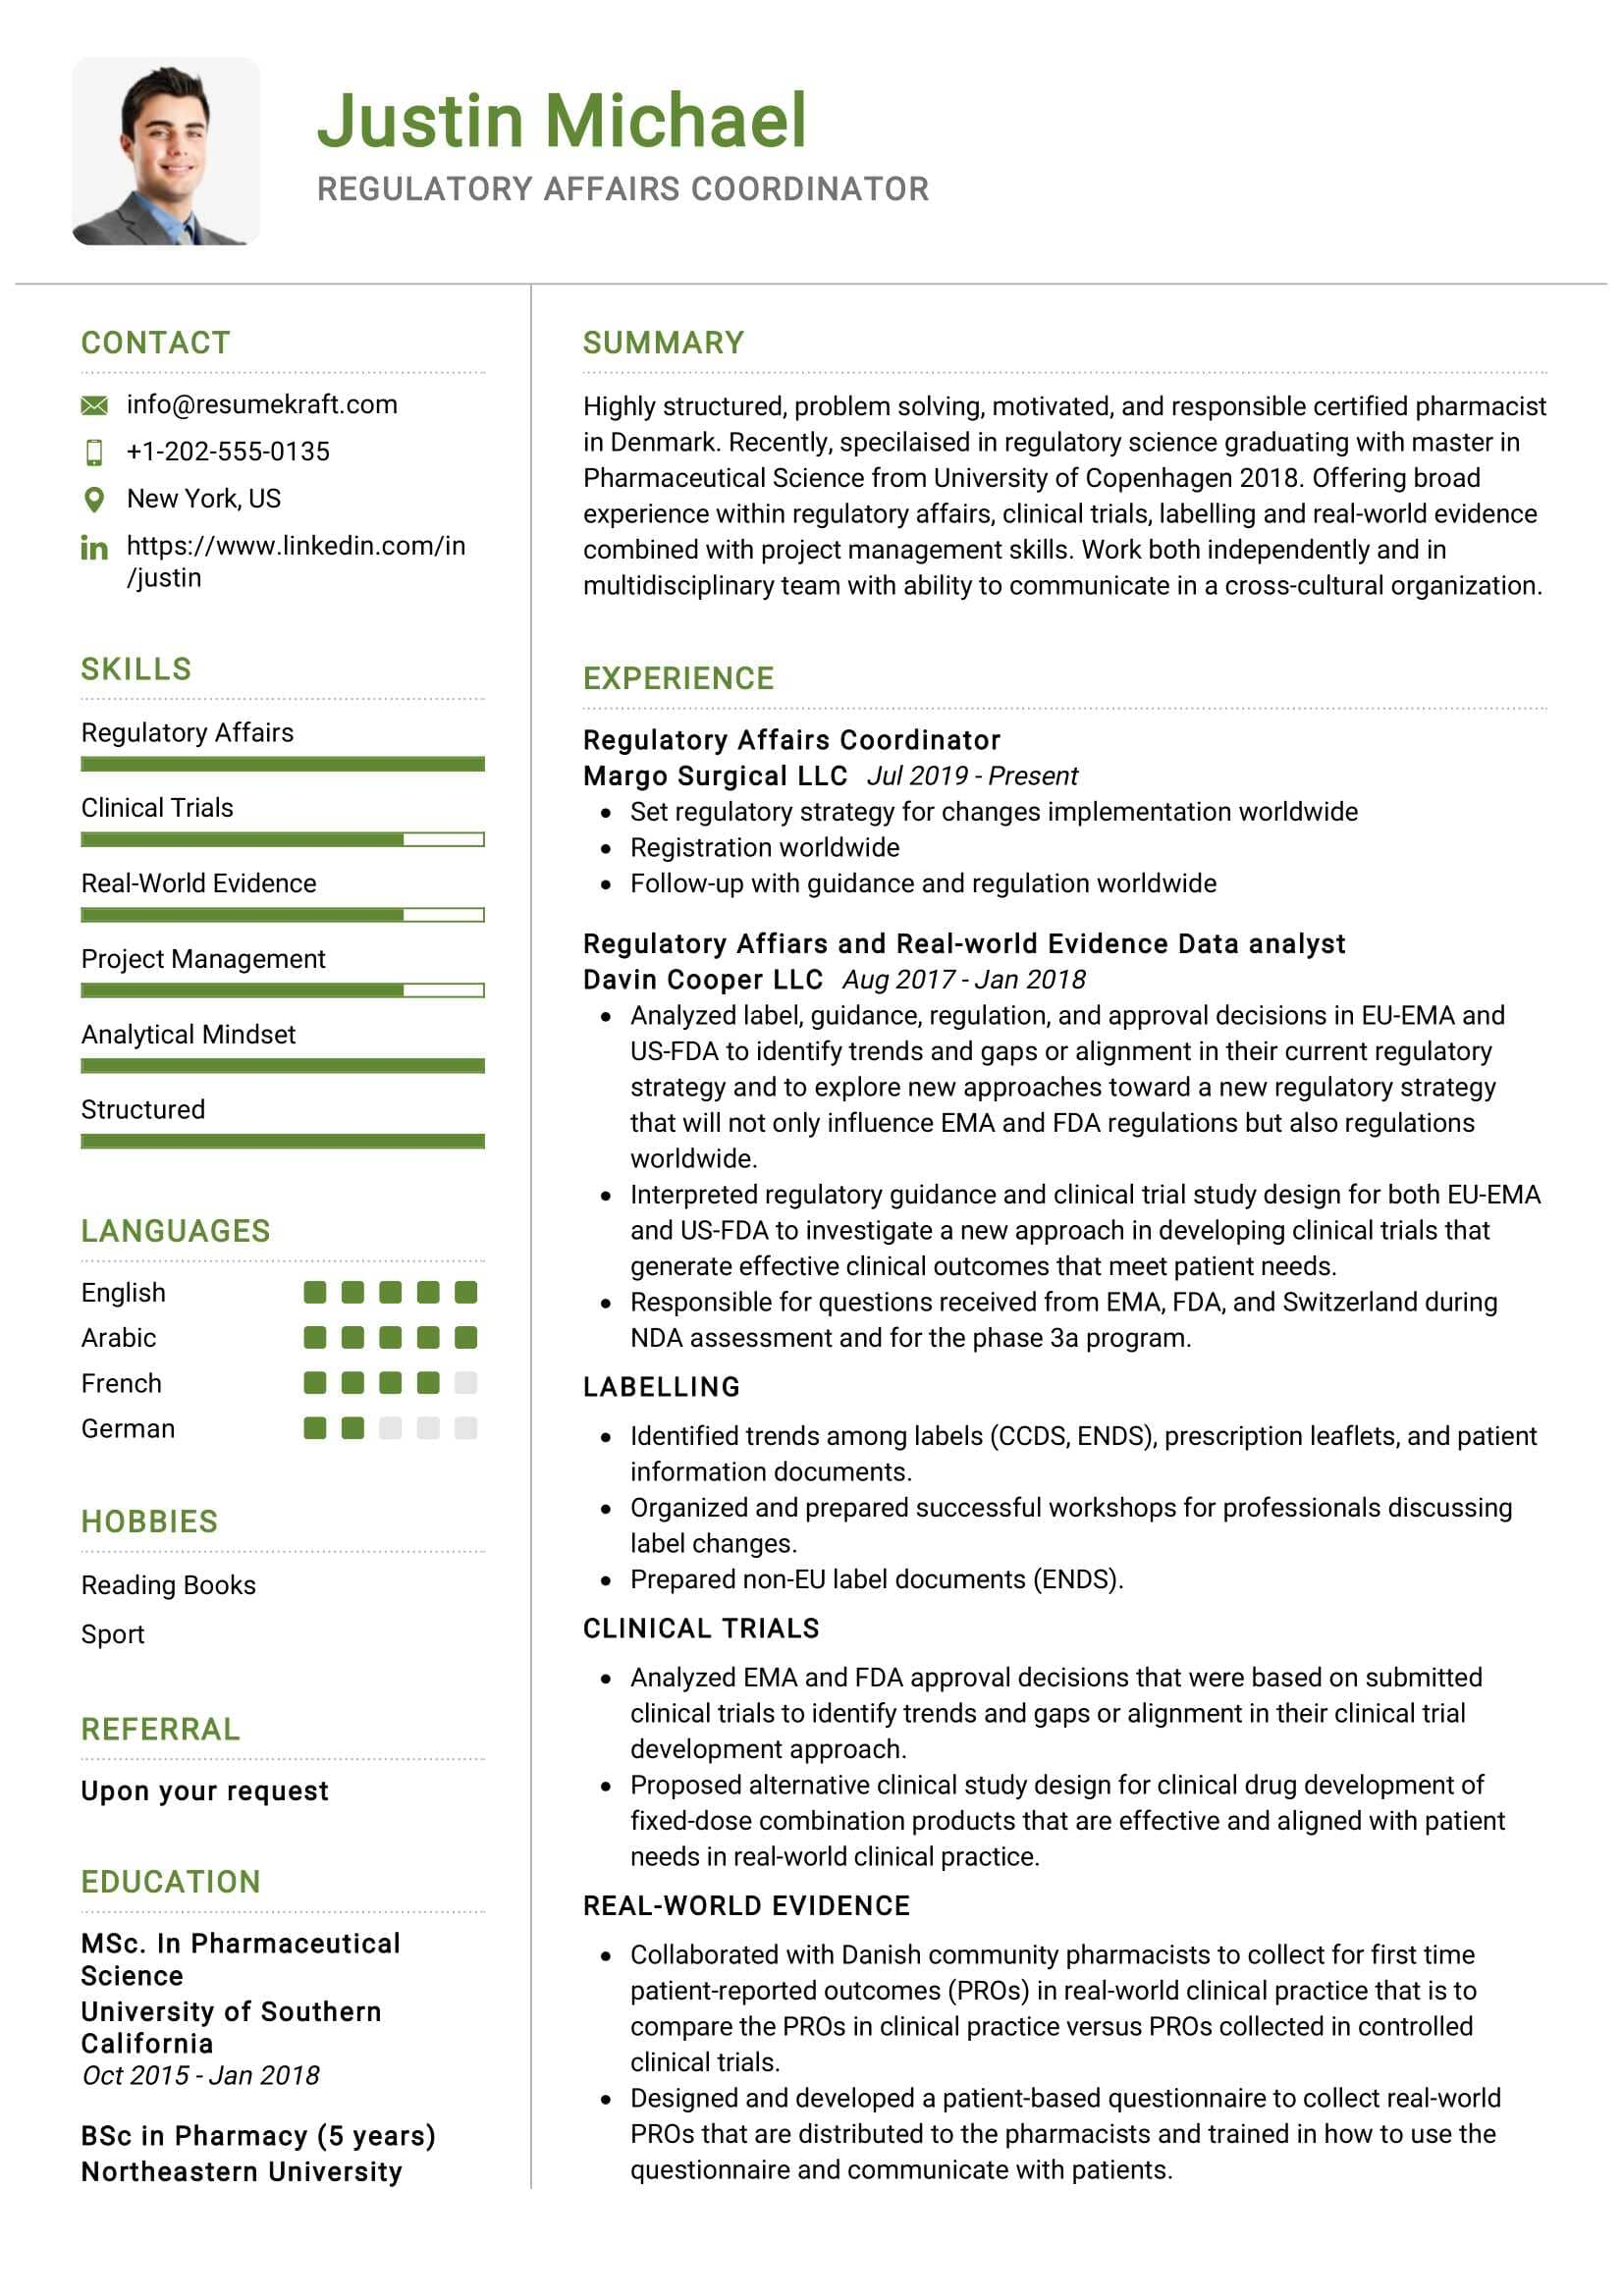 Regulatory Affairs Coordinator Resume